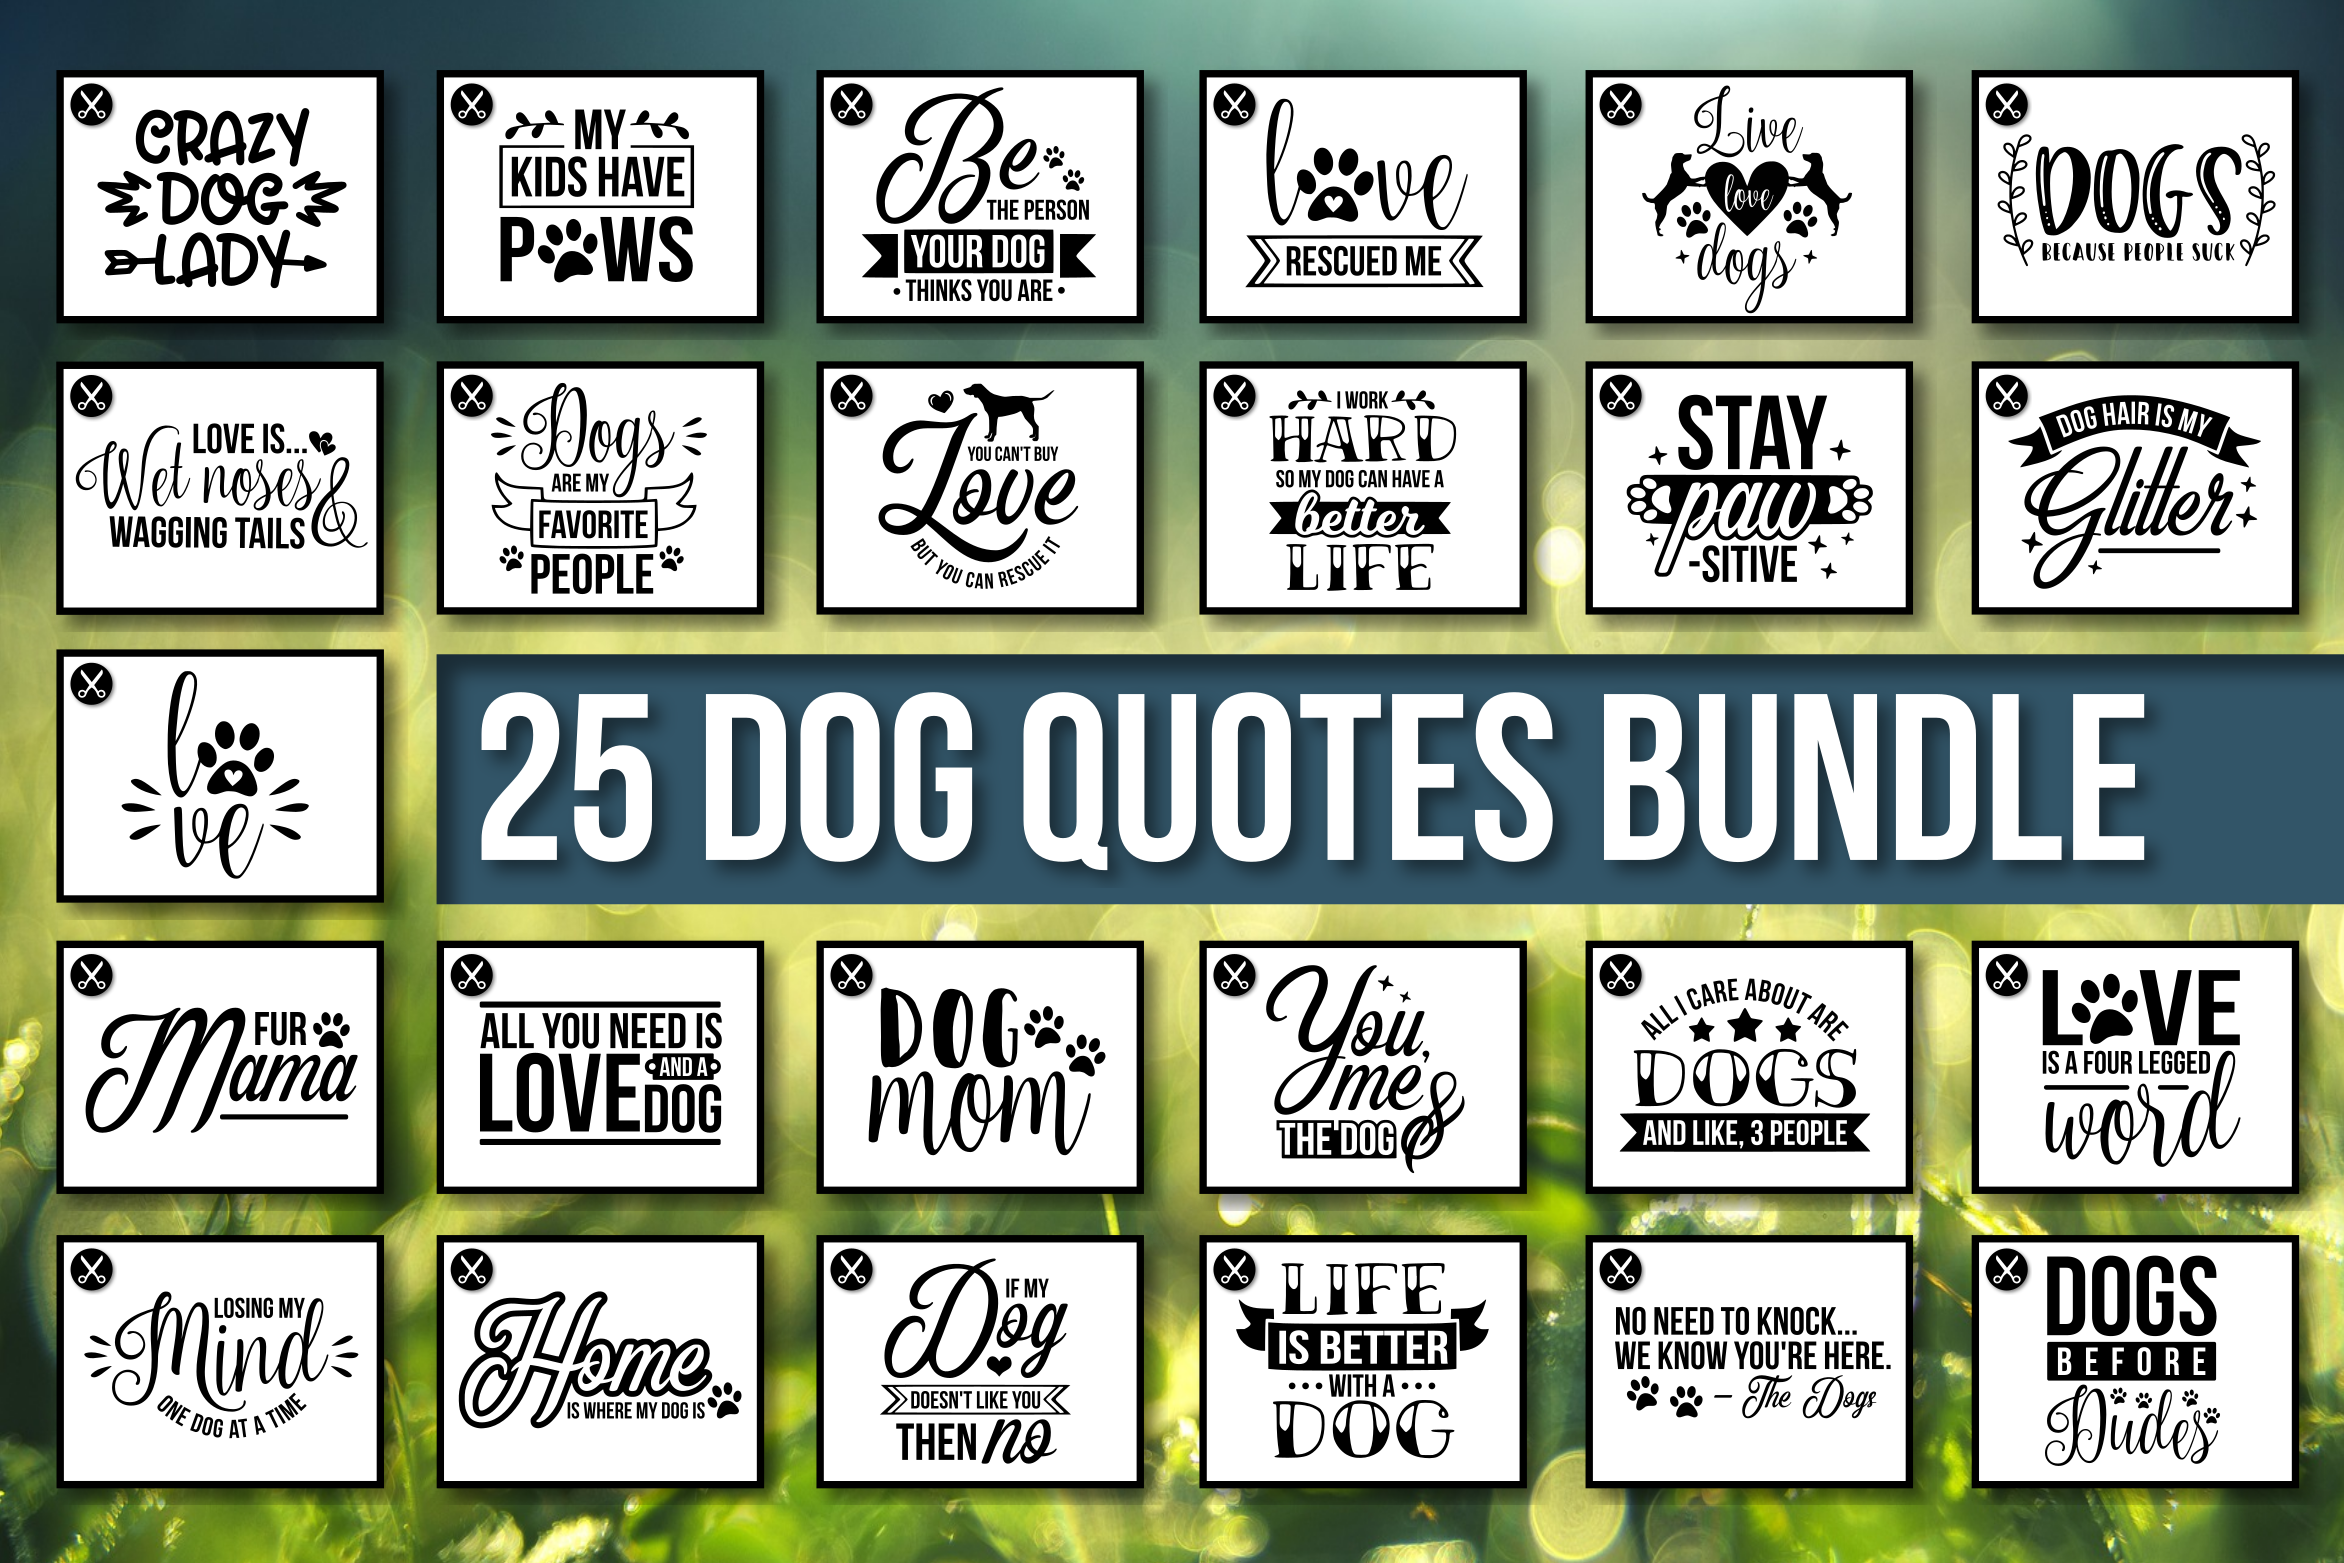 Download Free Dog Quotes Bundle Graphic By Crystalgiftsstudio Creative Fabrica for Cricut Explore, Silhouette and other cutting machines.